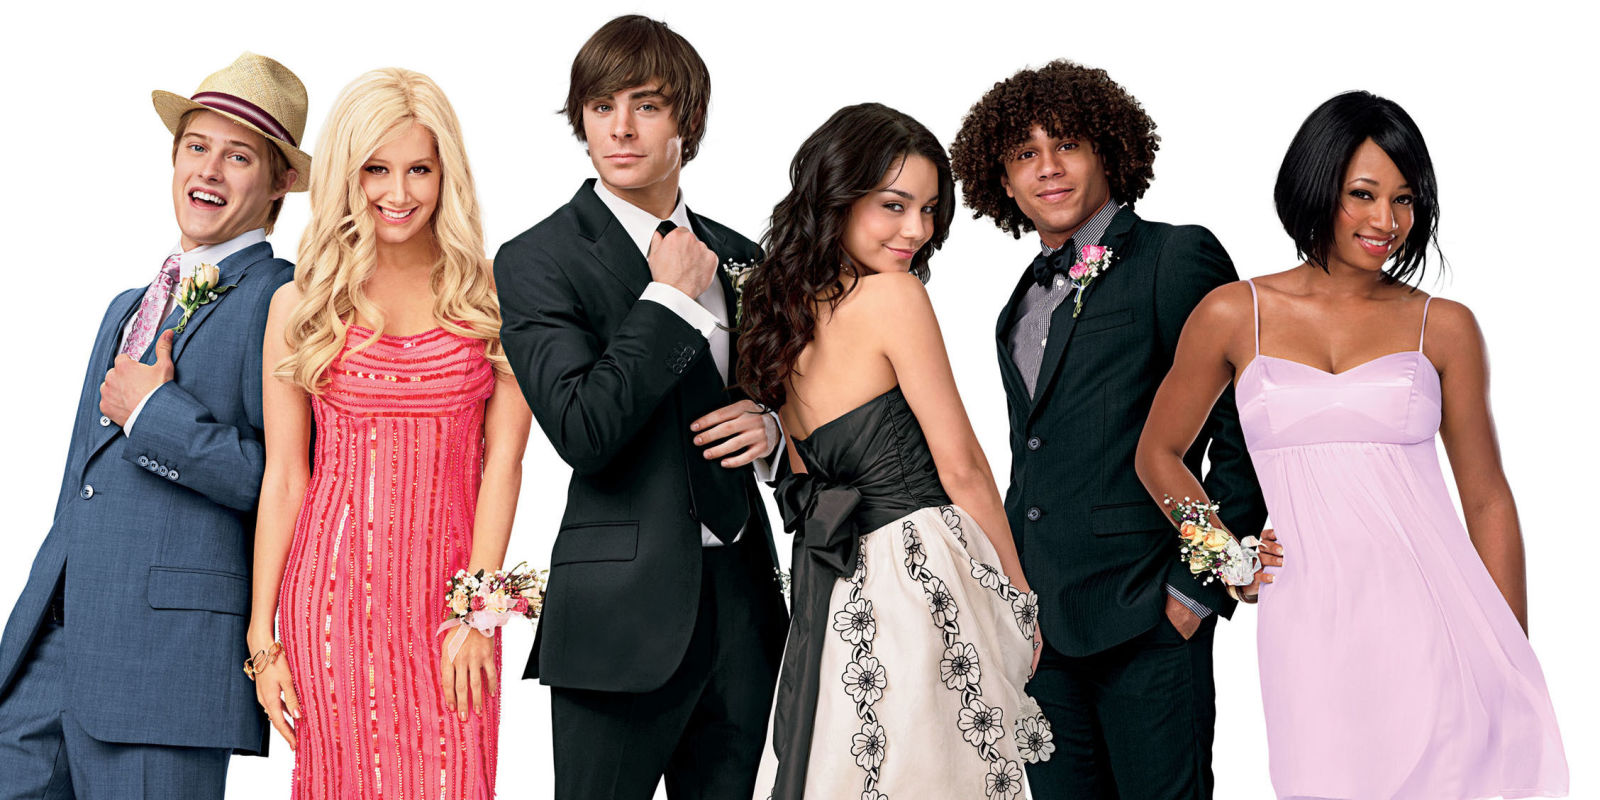 High School Musical 4 Casting Call Apply Audition